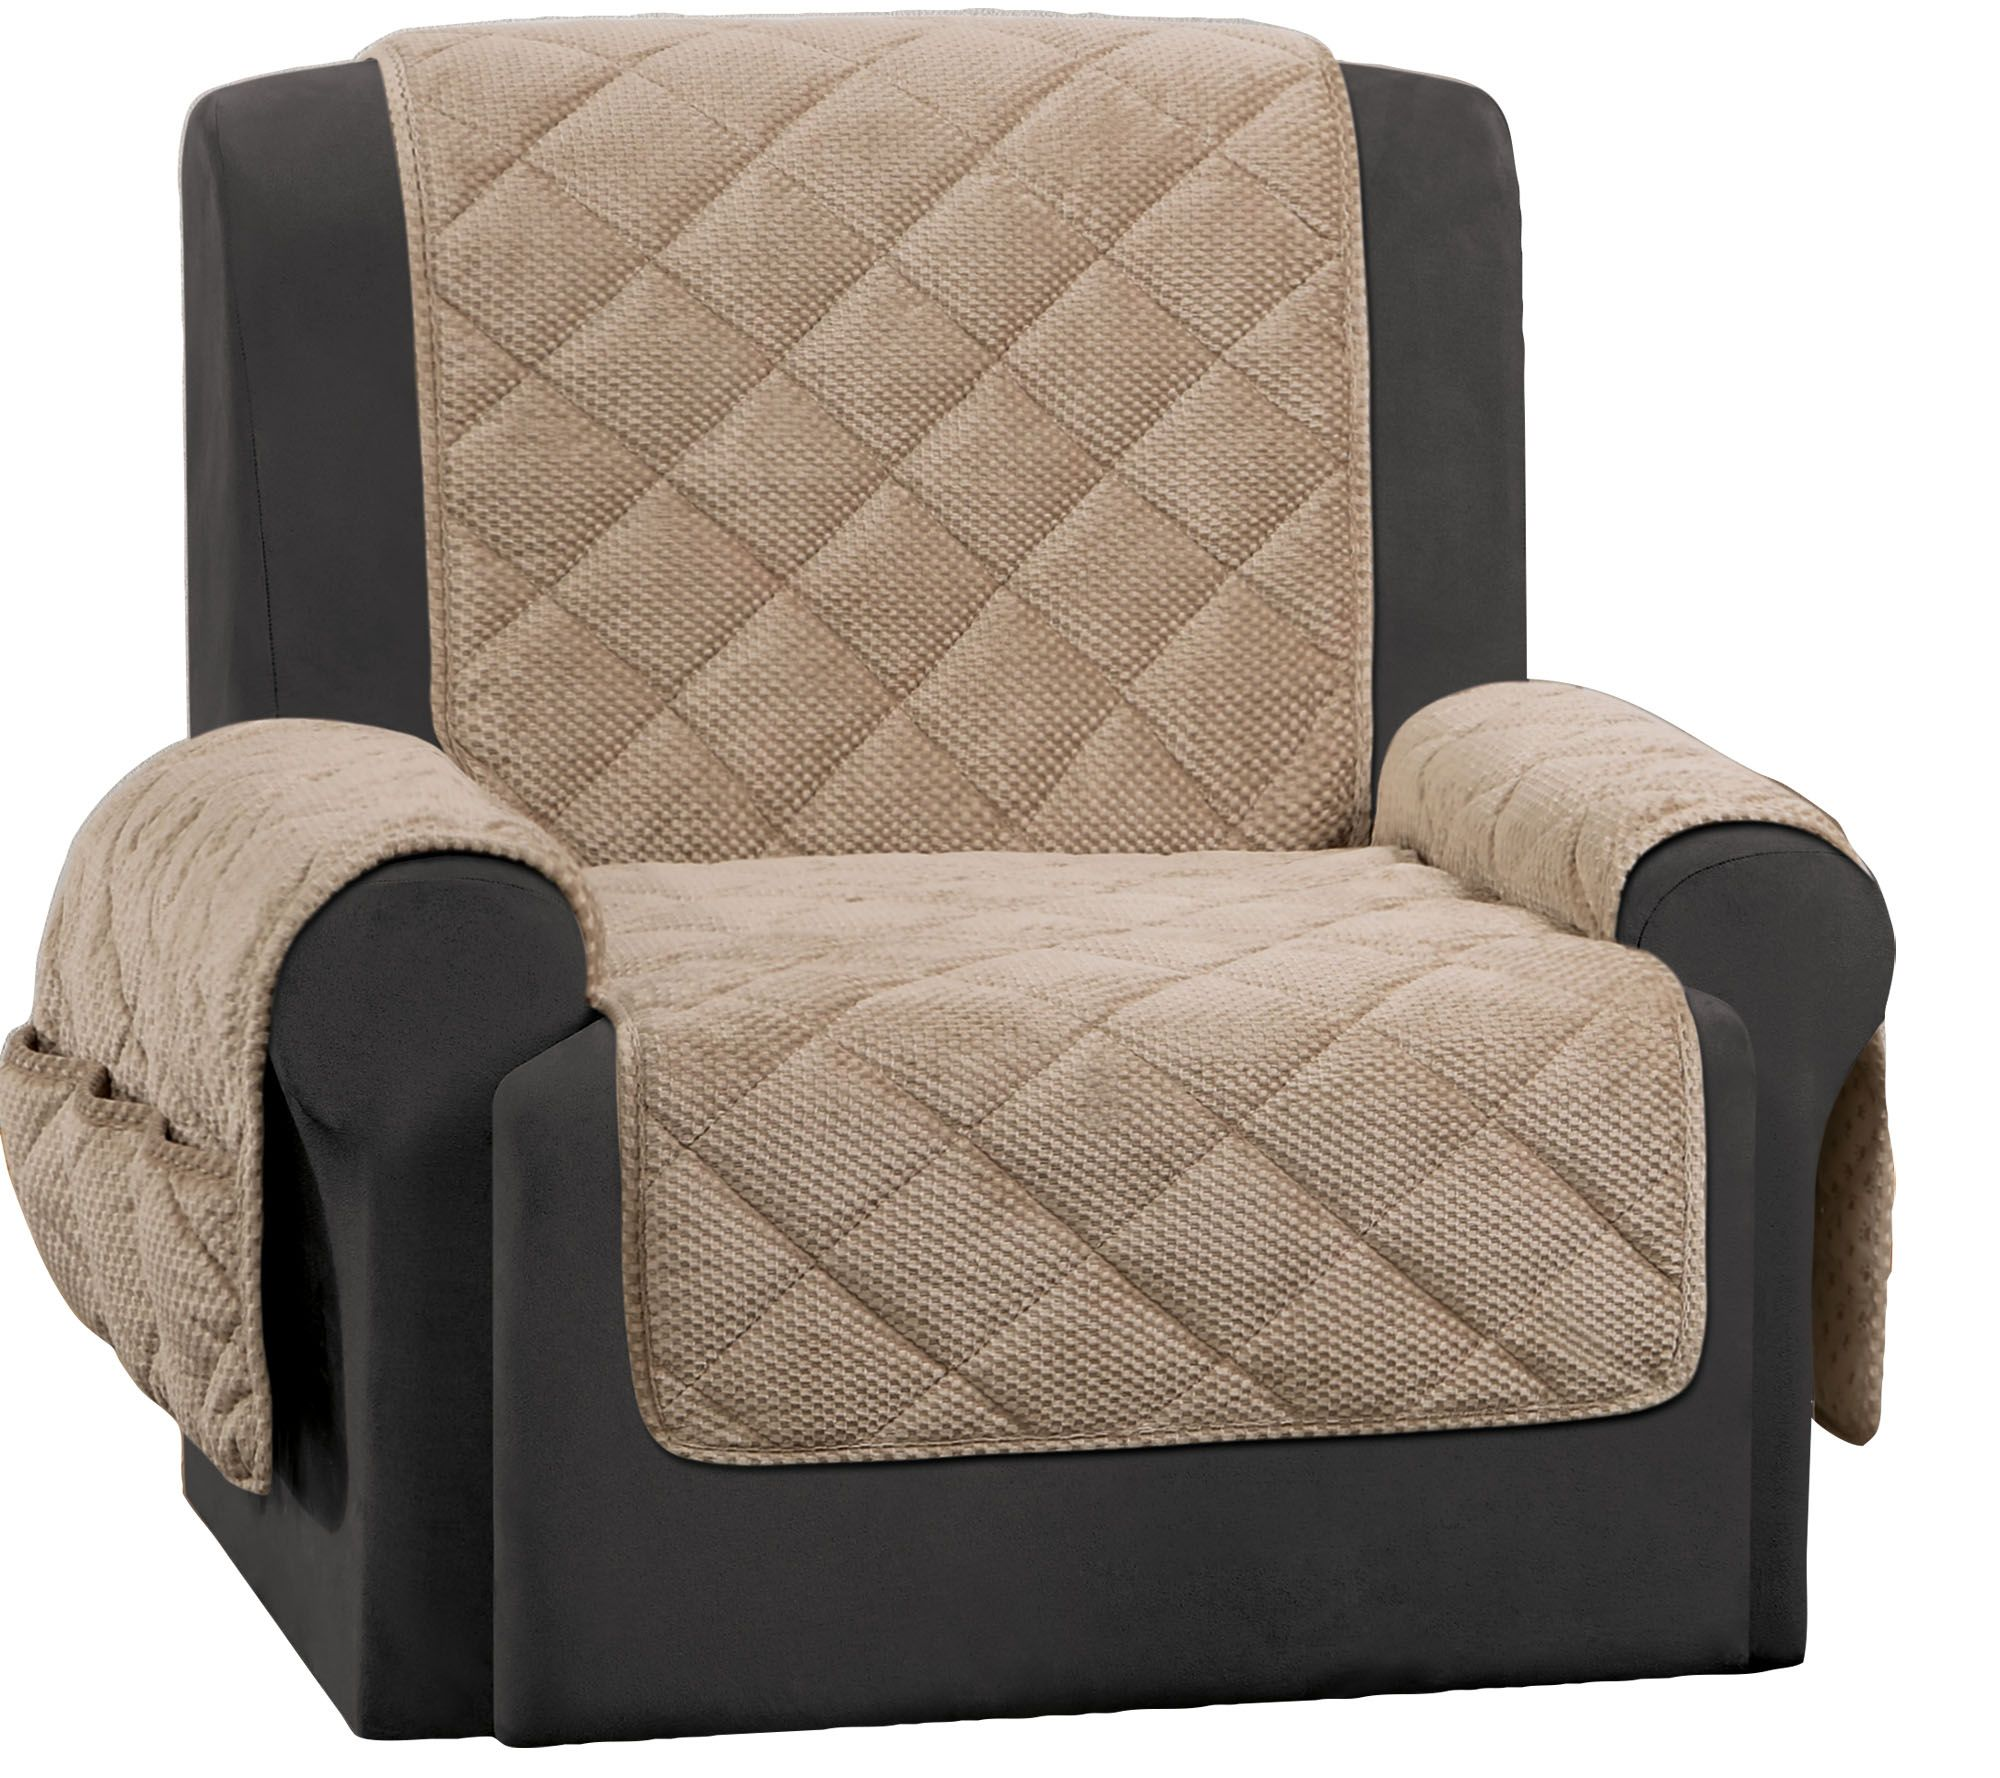 Sure Fit Recliner Furniture Cover with Textured Pique Fabric - Page 1 u2014 QVC.com  sc 1 st  QVC.com & Sure Fit Recliner Furniture Cover with Textured Pique Fabric ... islam-shia.org